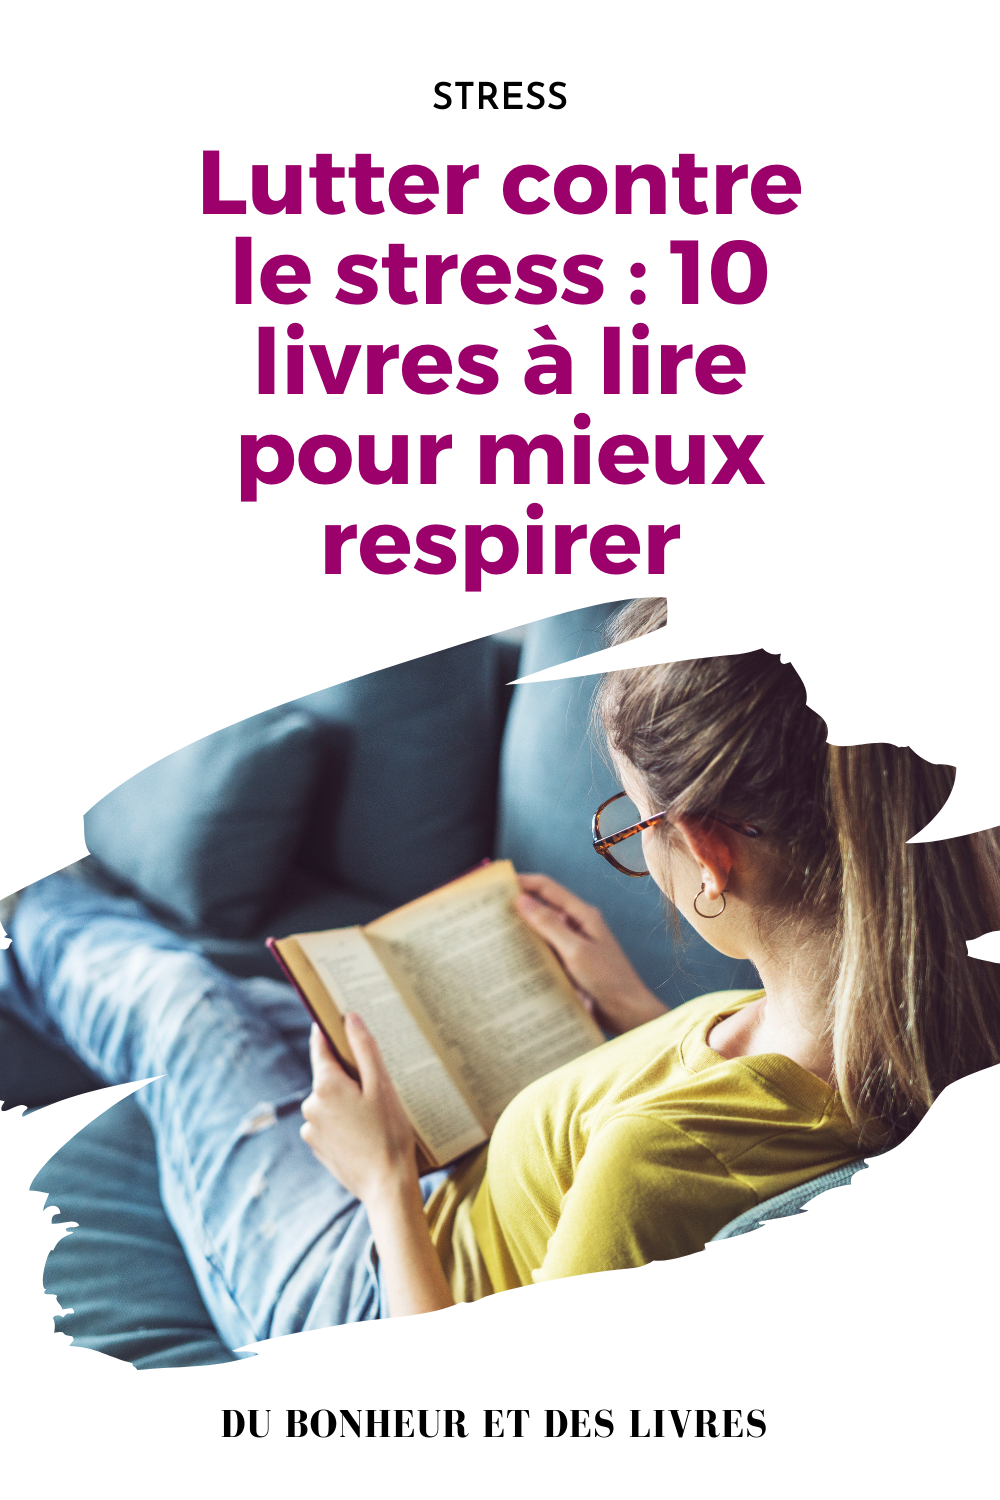 Lutter Contre Le Stress 10 Livres A Lire Pour Mieux Respirer In 2020 Stress Movie Posters Movies